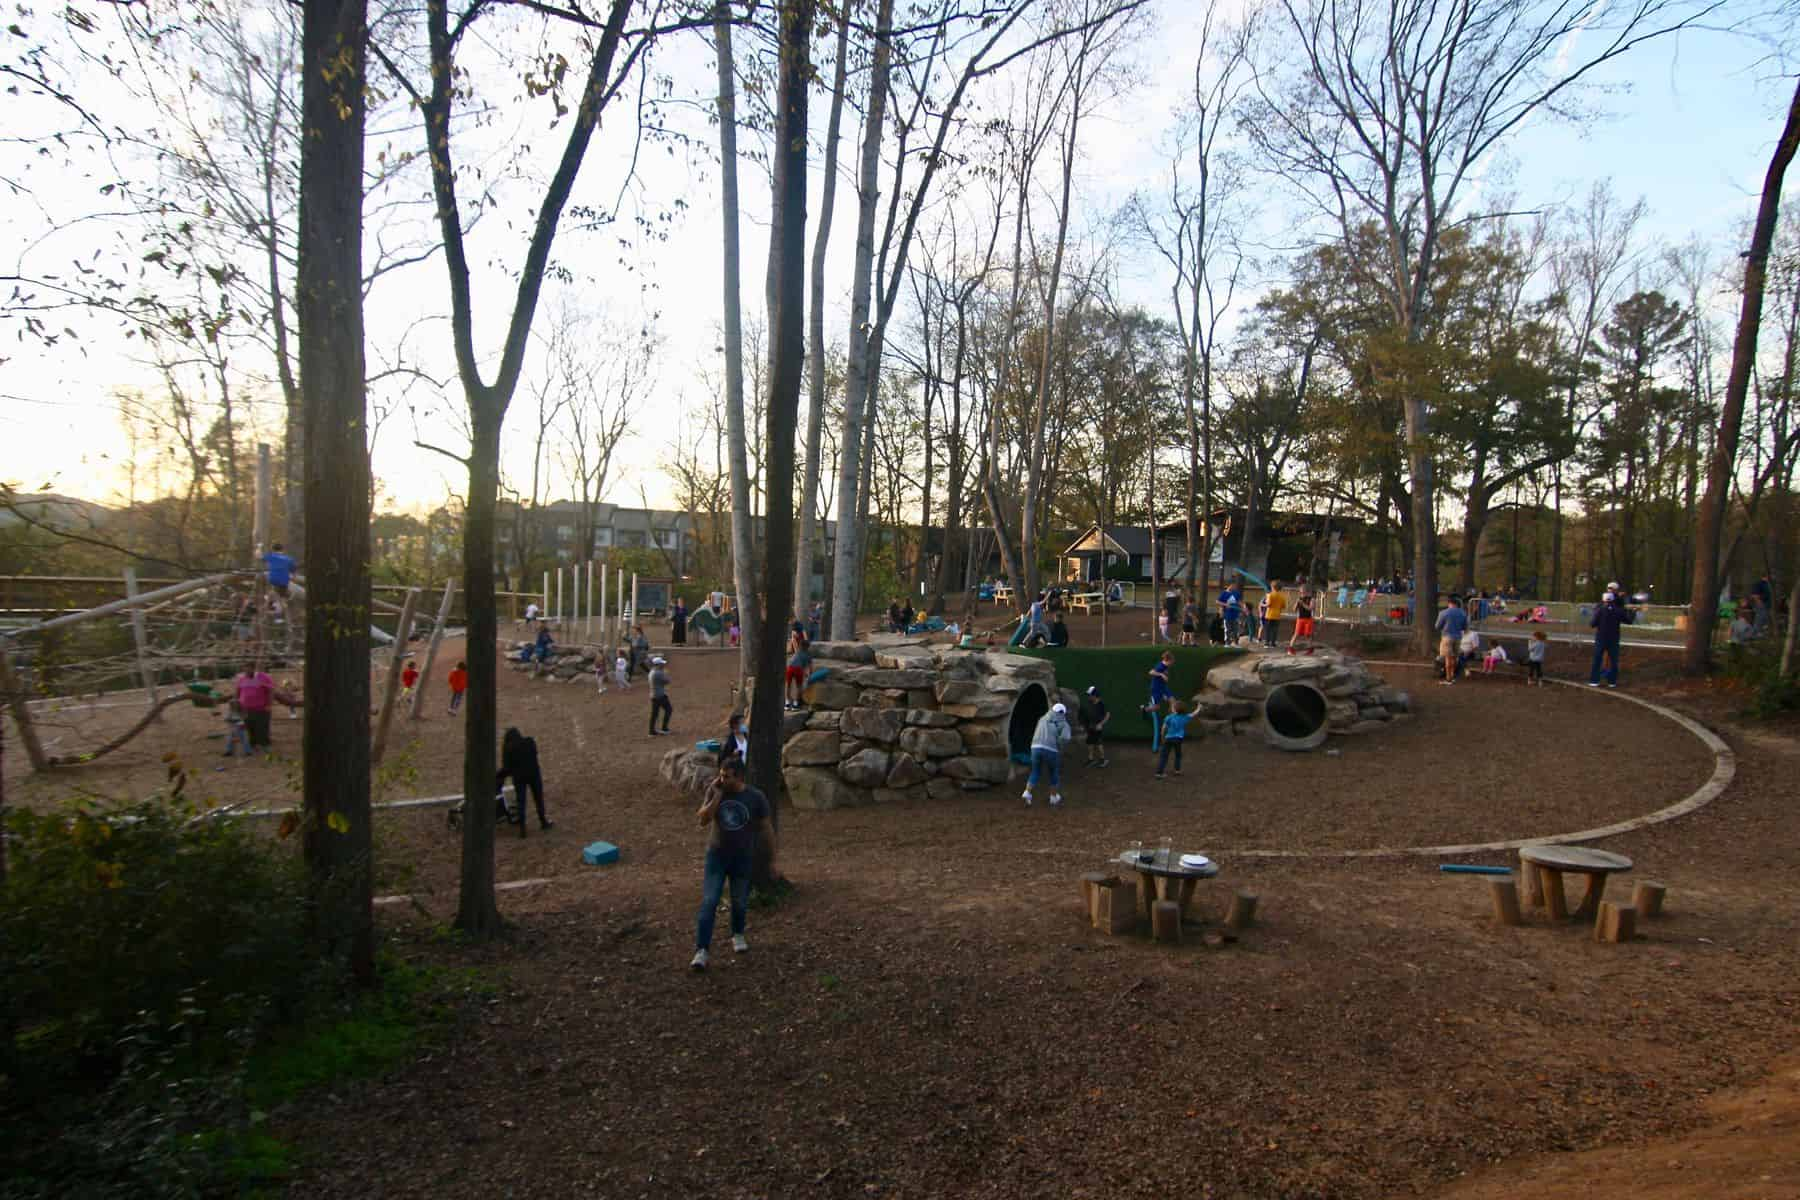 Woodstock Elm Street Playground and Stage